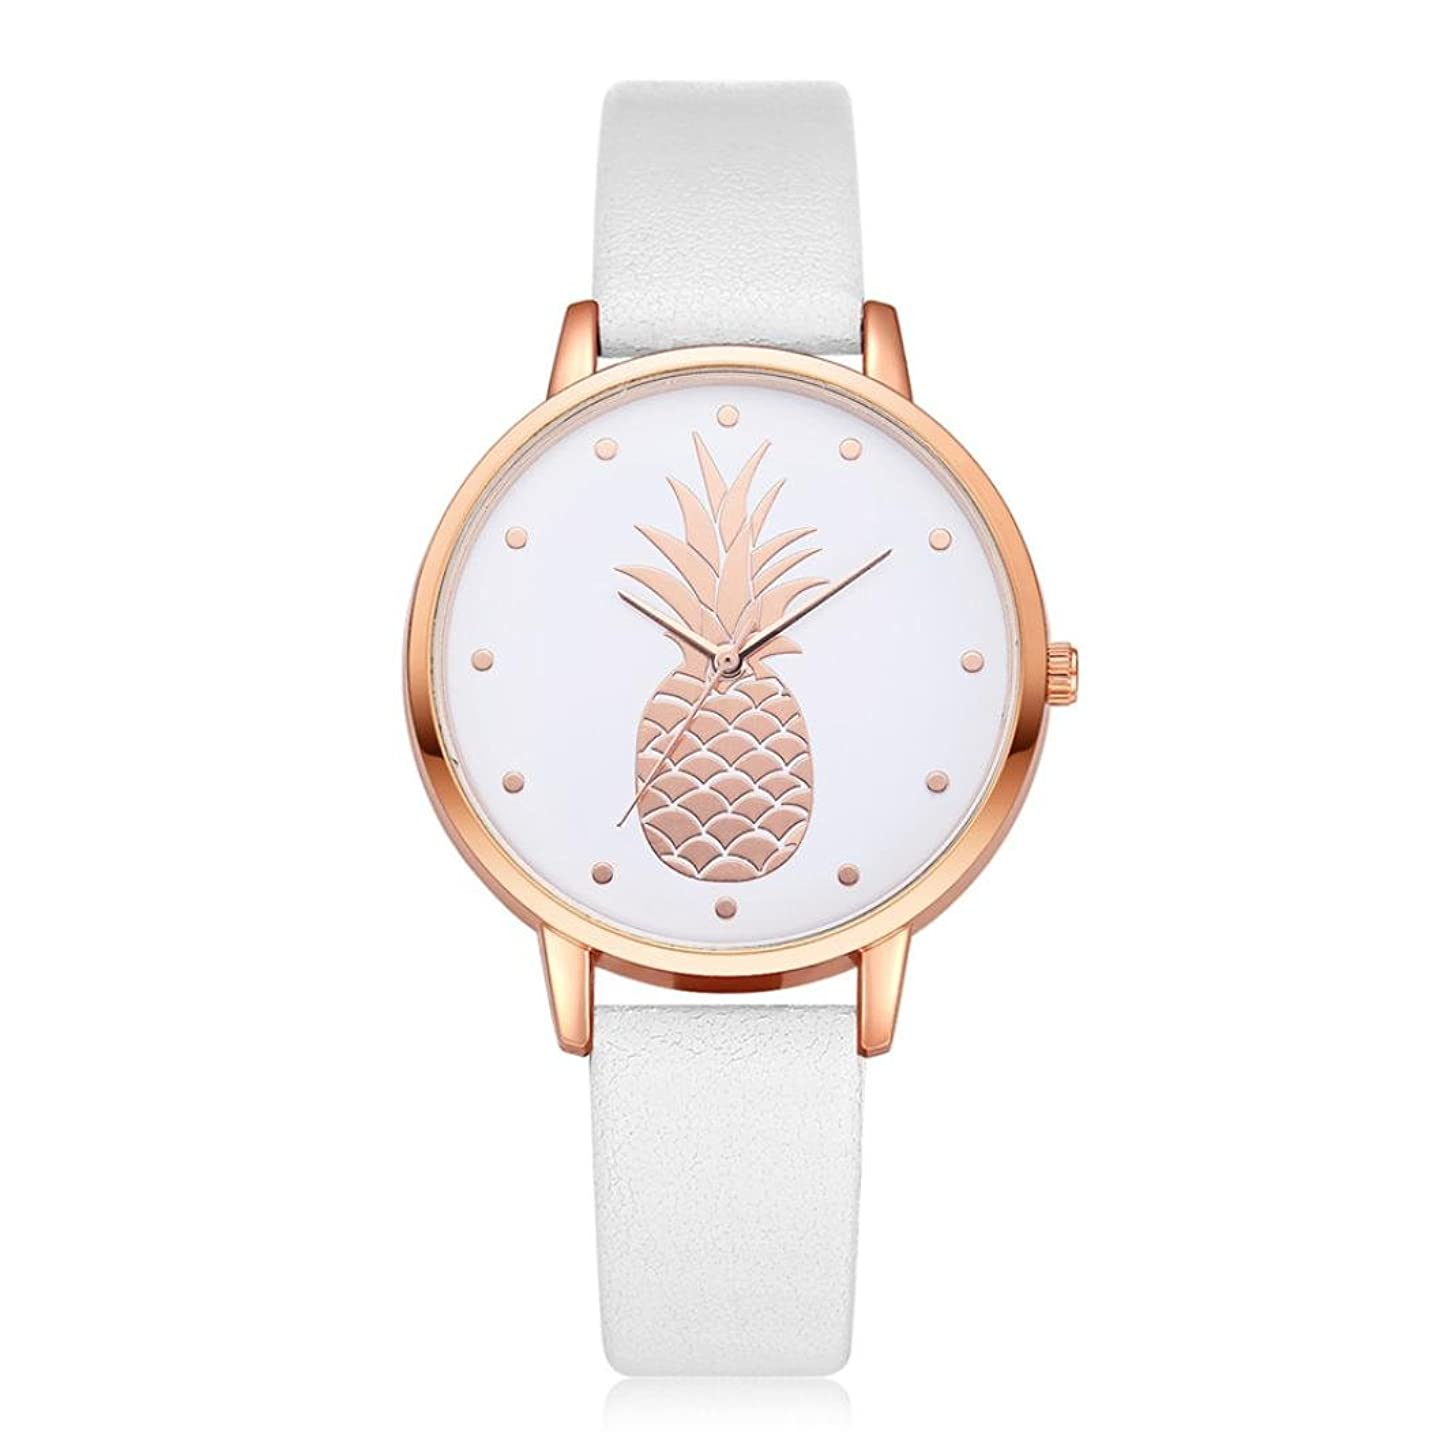 Swyss Women's Simple Fashion Watch Cute Pineapple Pattern Dial Leather Analog Quartz Wrist Watch Chic Sweet Style (E)